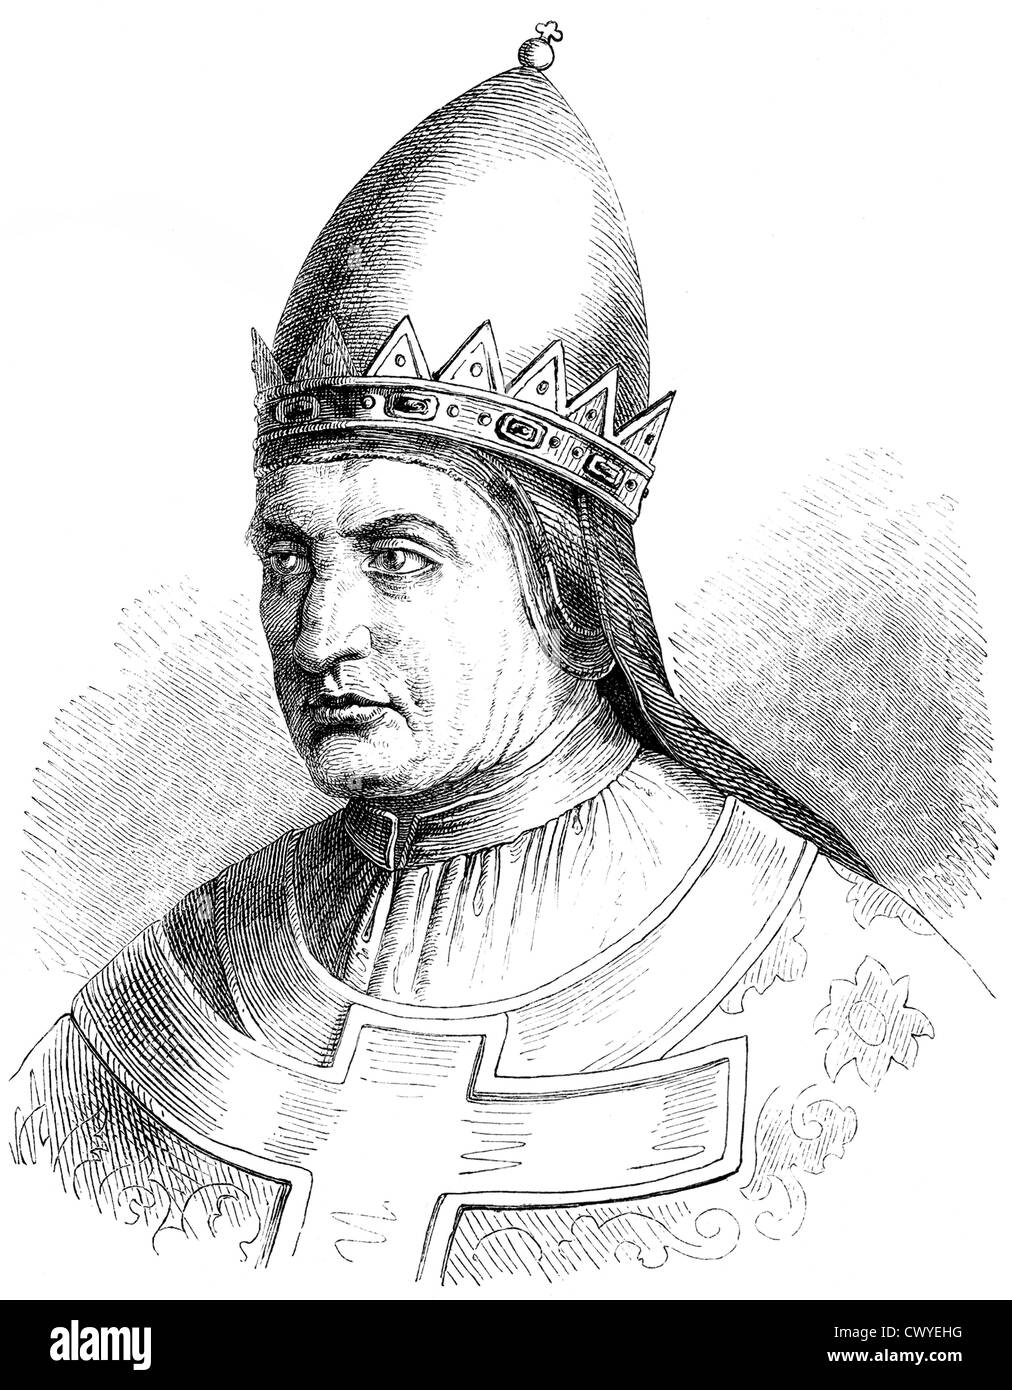 gregory vii hildebrand Biography of hildebrand of sovana pope saint gregory vii (c 1015/1028 – 25 may 1085), born hildebrand of sovana, was pope from 22 april 1073 until his death.